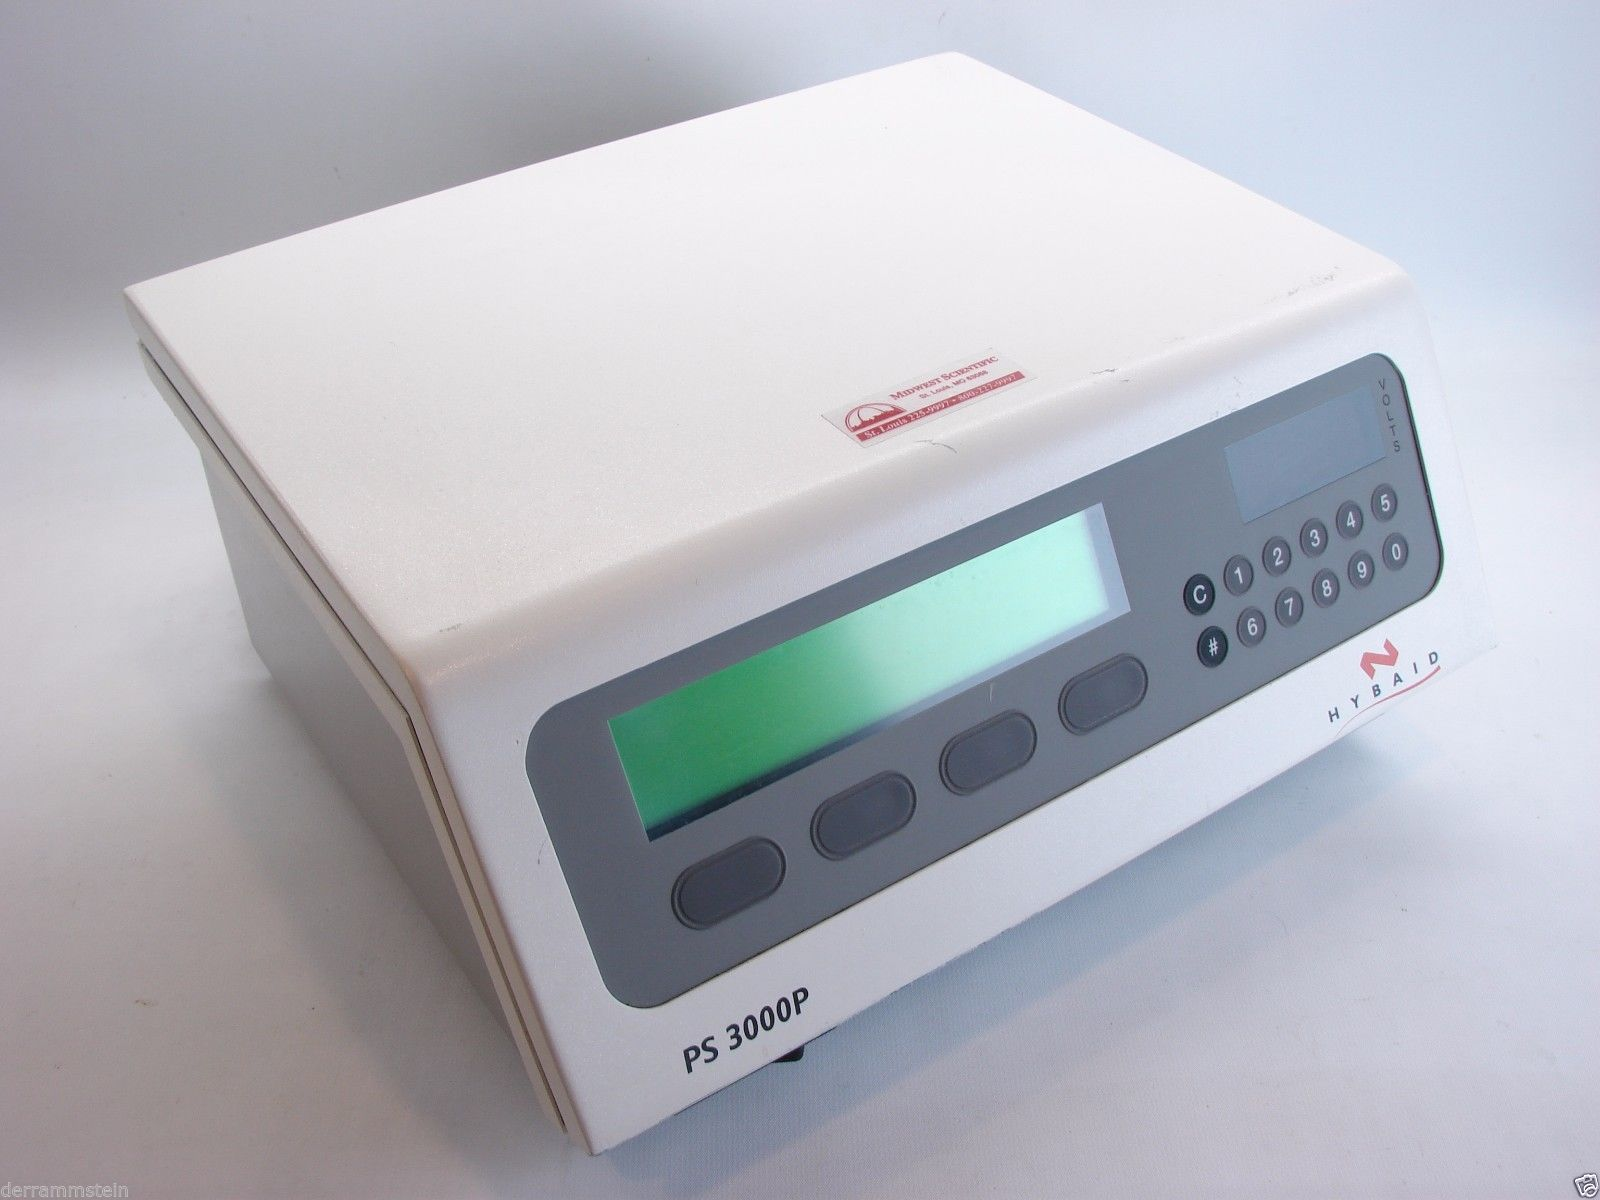 Hybaid PS 3000P Electrophoresis Power Supply For Lab Use Free Shipping  ps3